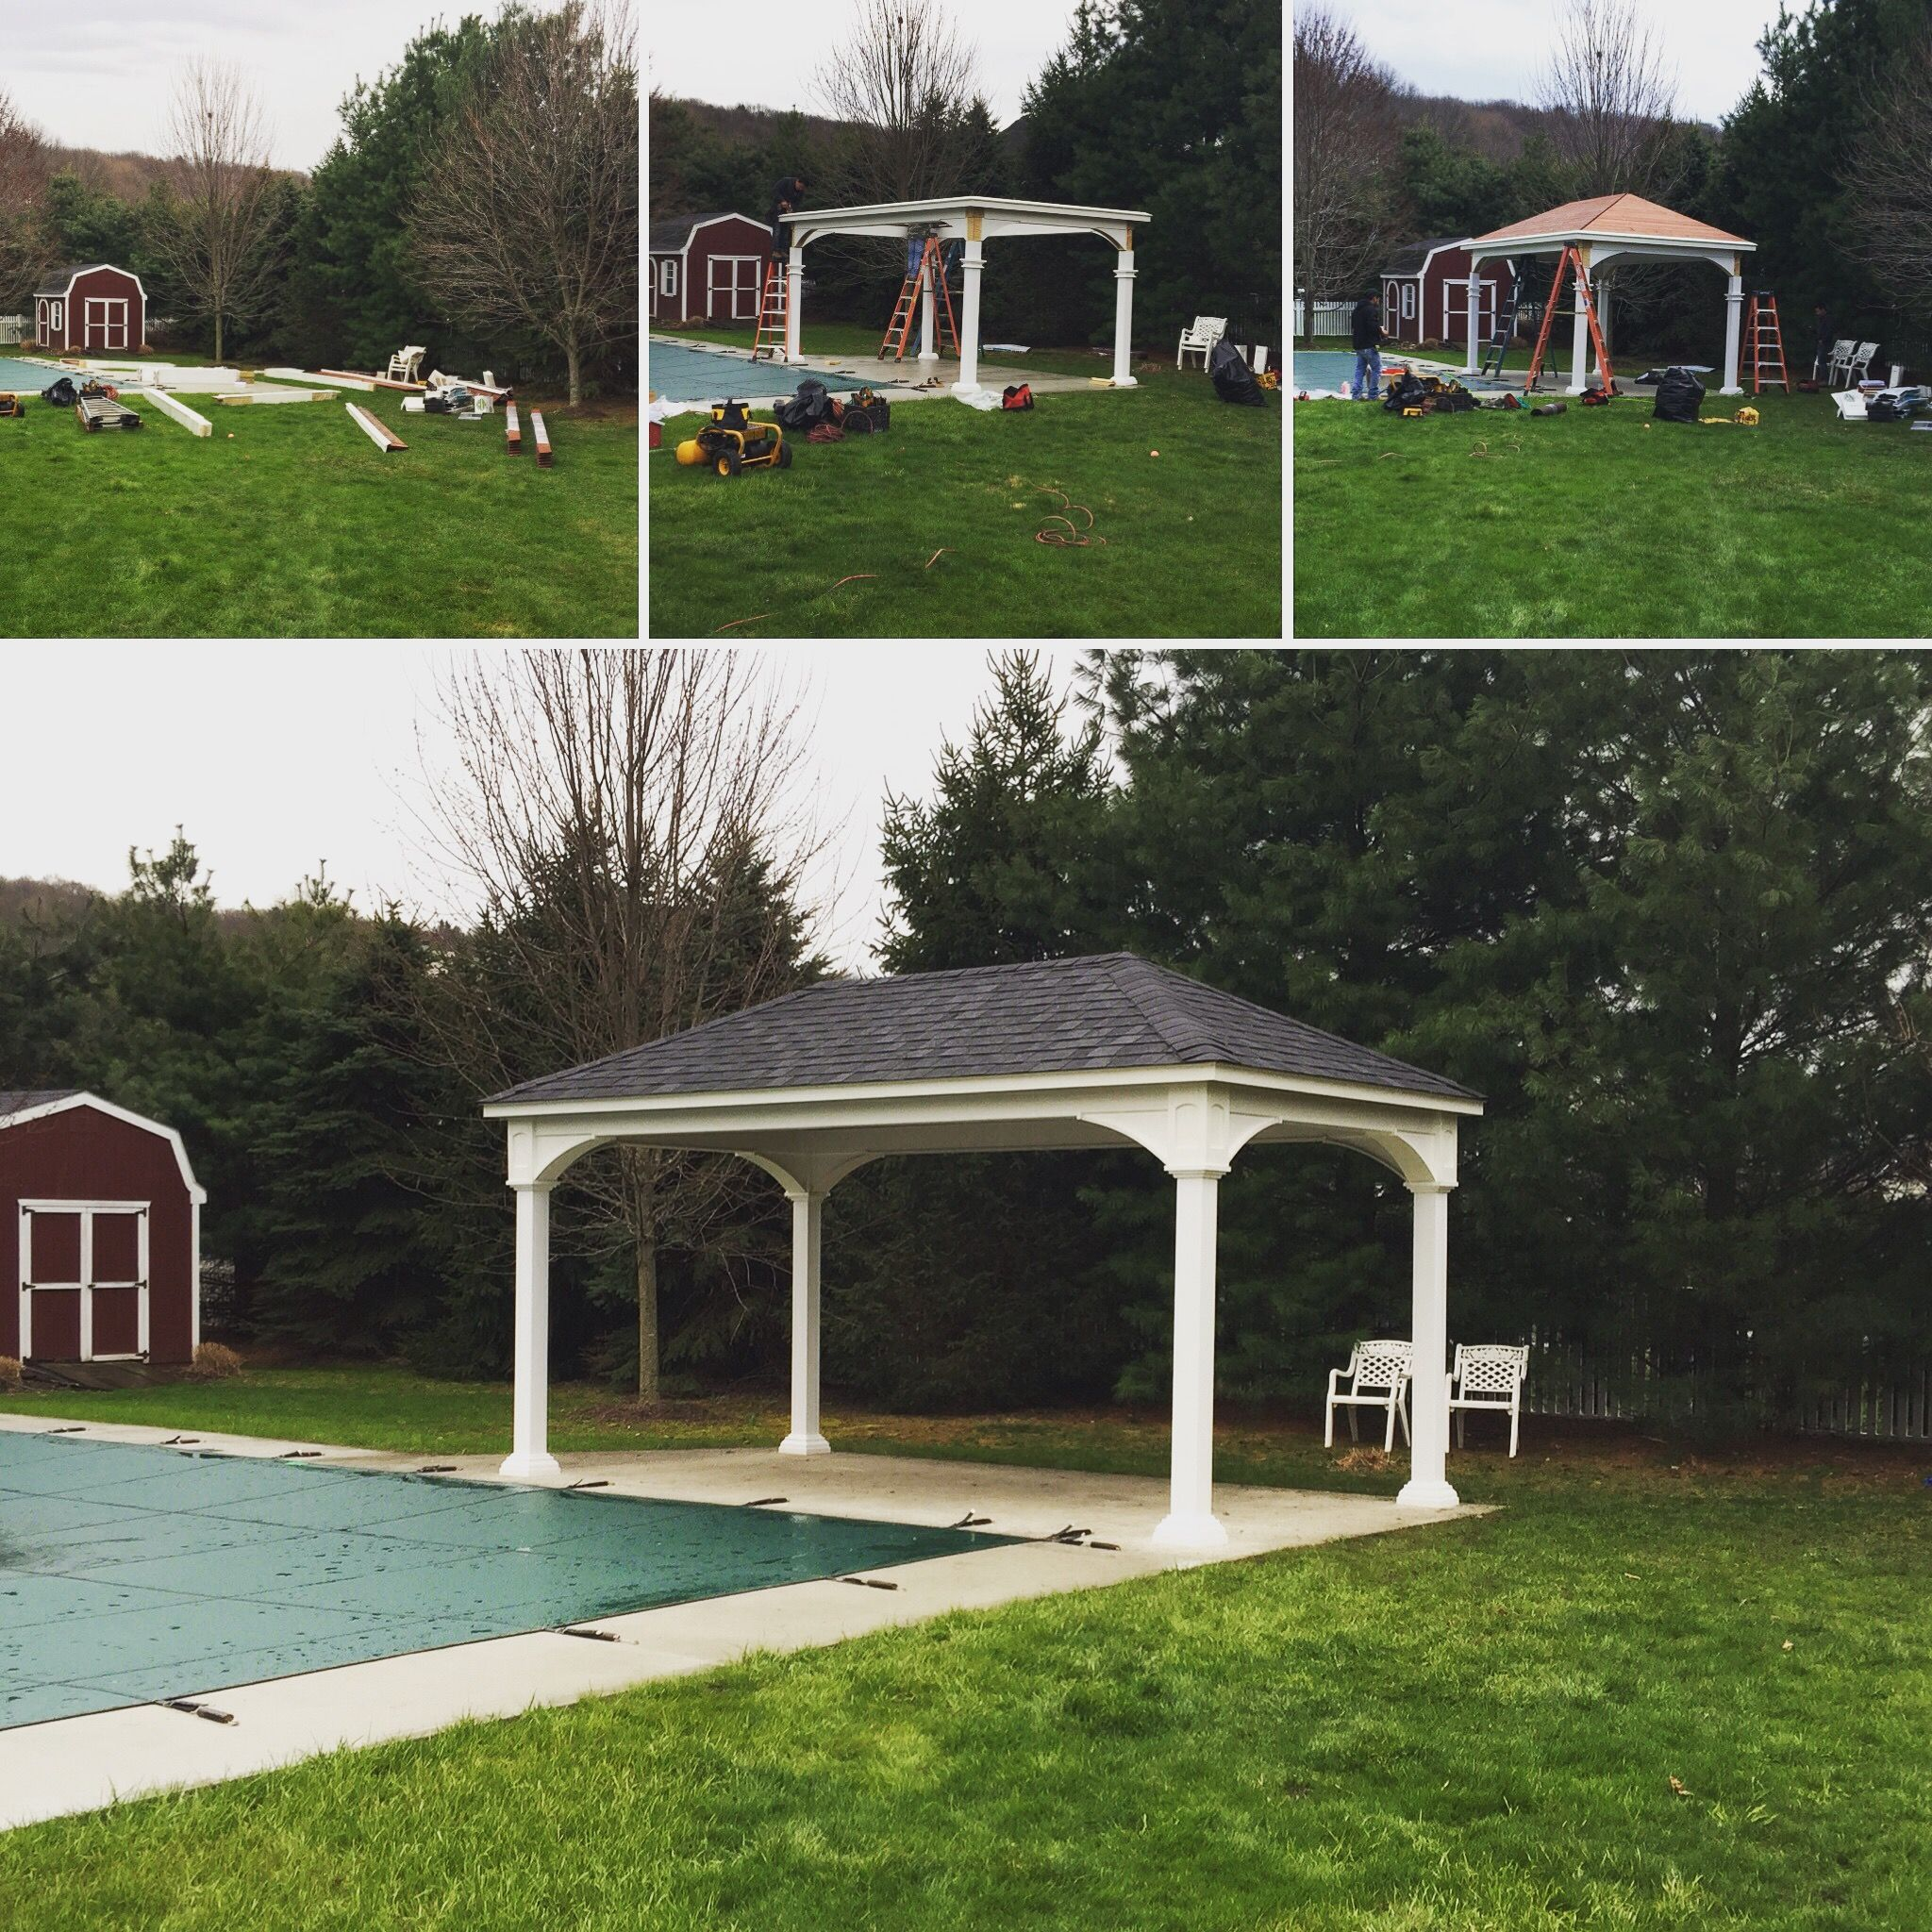 Ordinaire Traditional Vinyl Pavilion, Professional Installed By Best In Backyards!  Great For The Backyard,